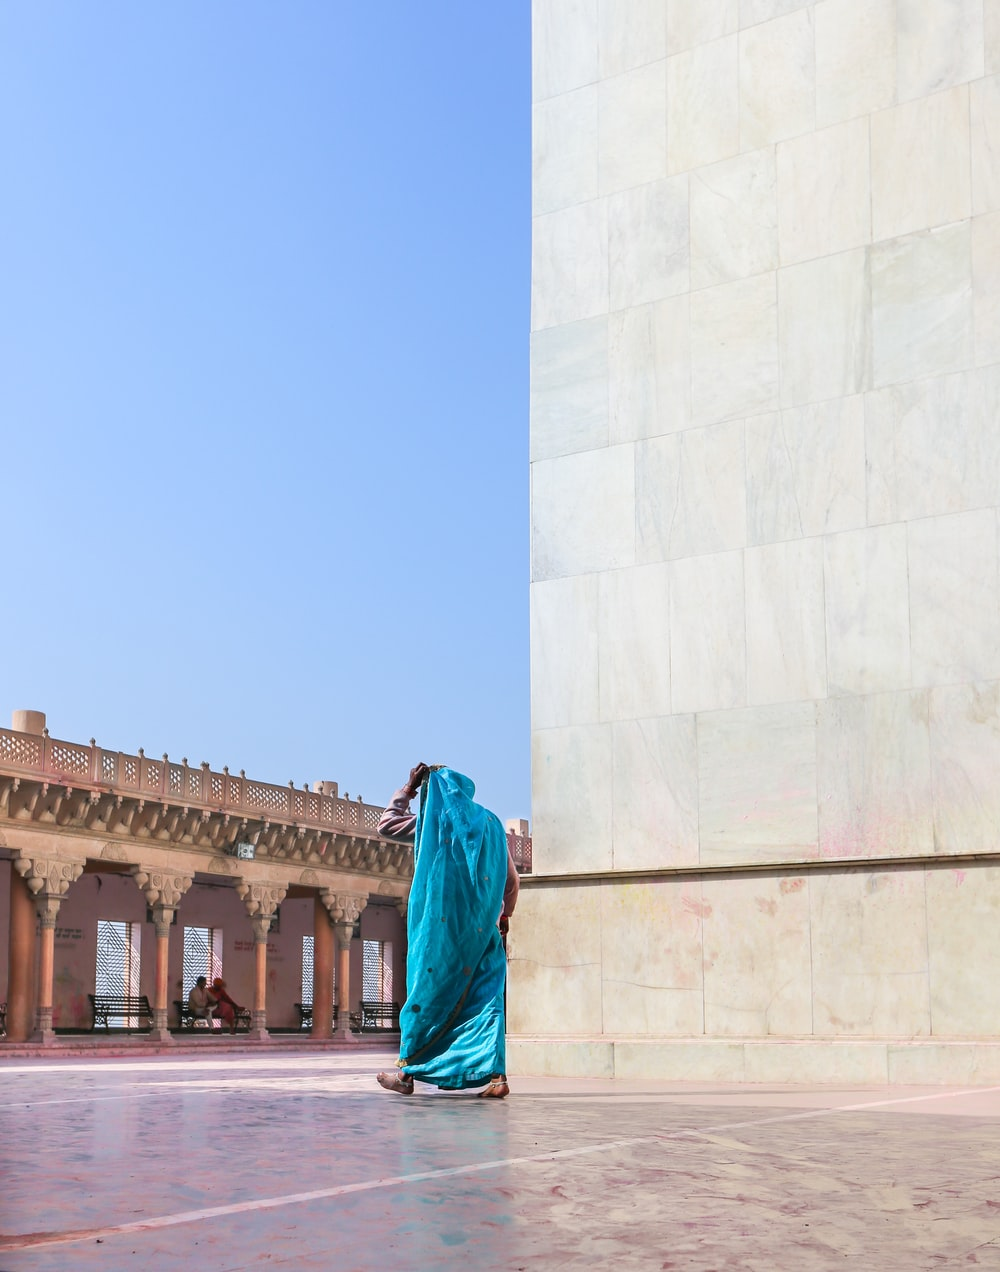 woman in green hijab standing near white concrete building during daytime